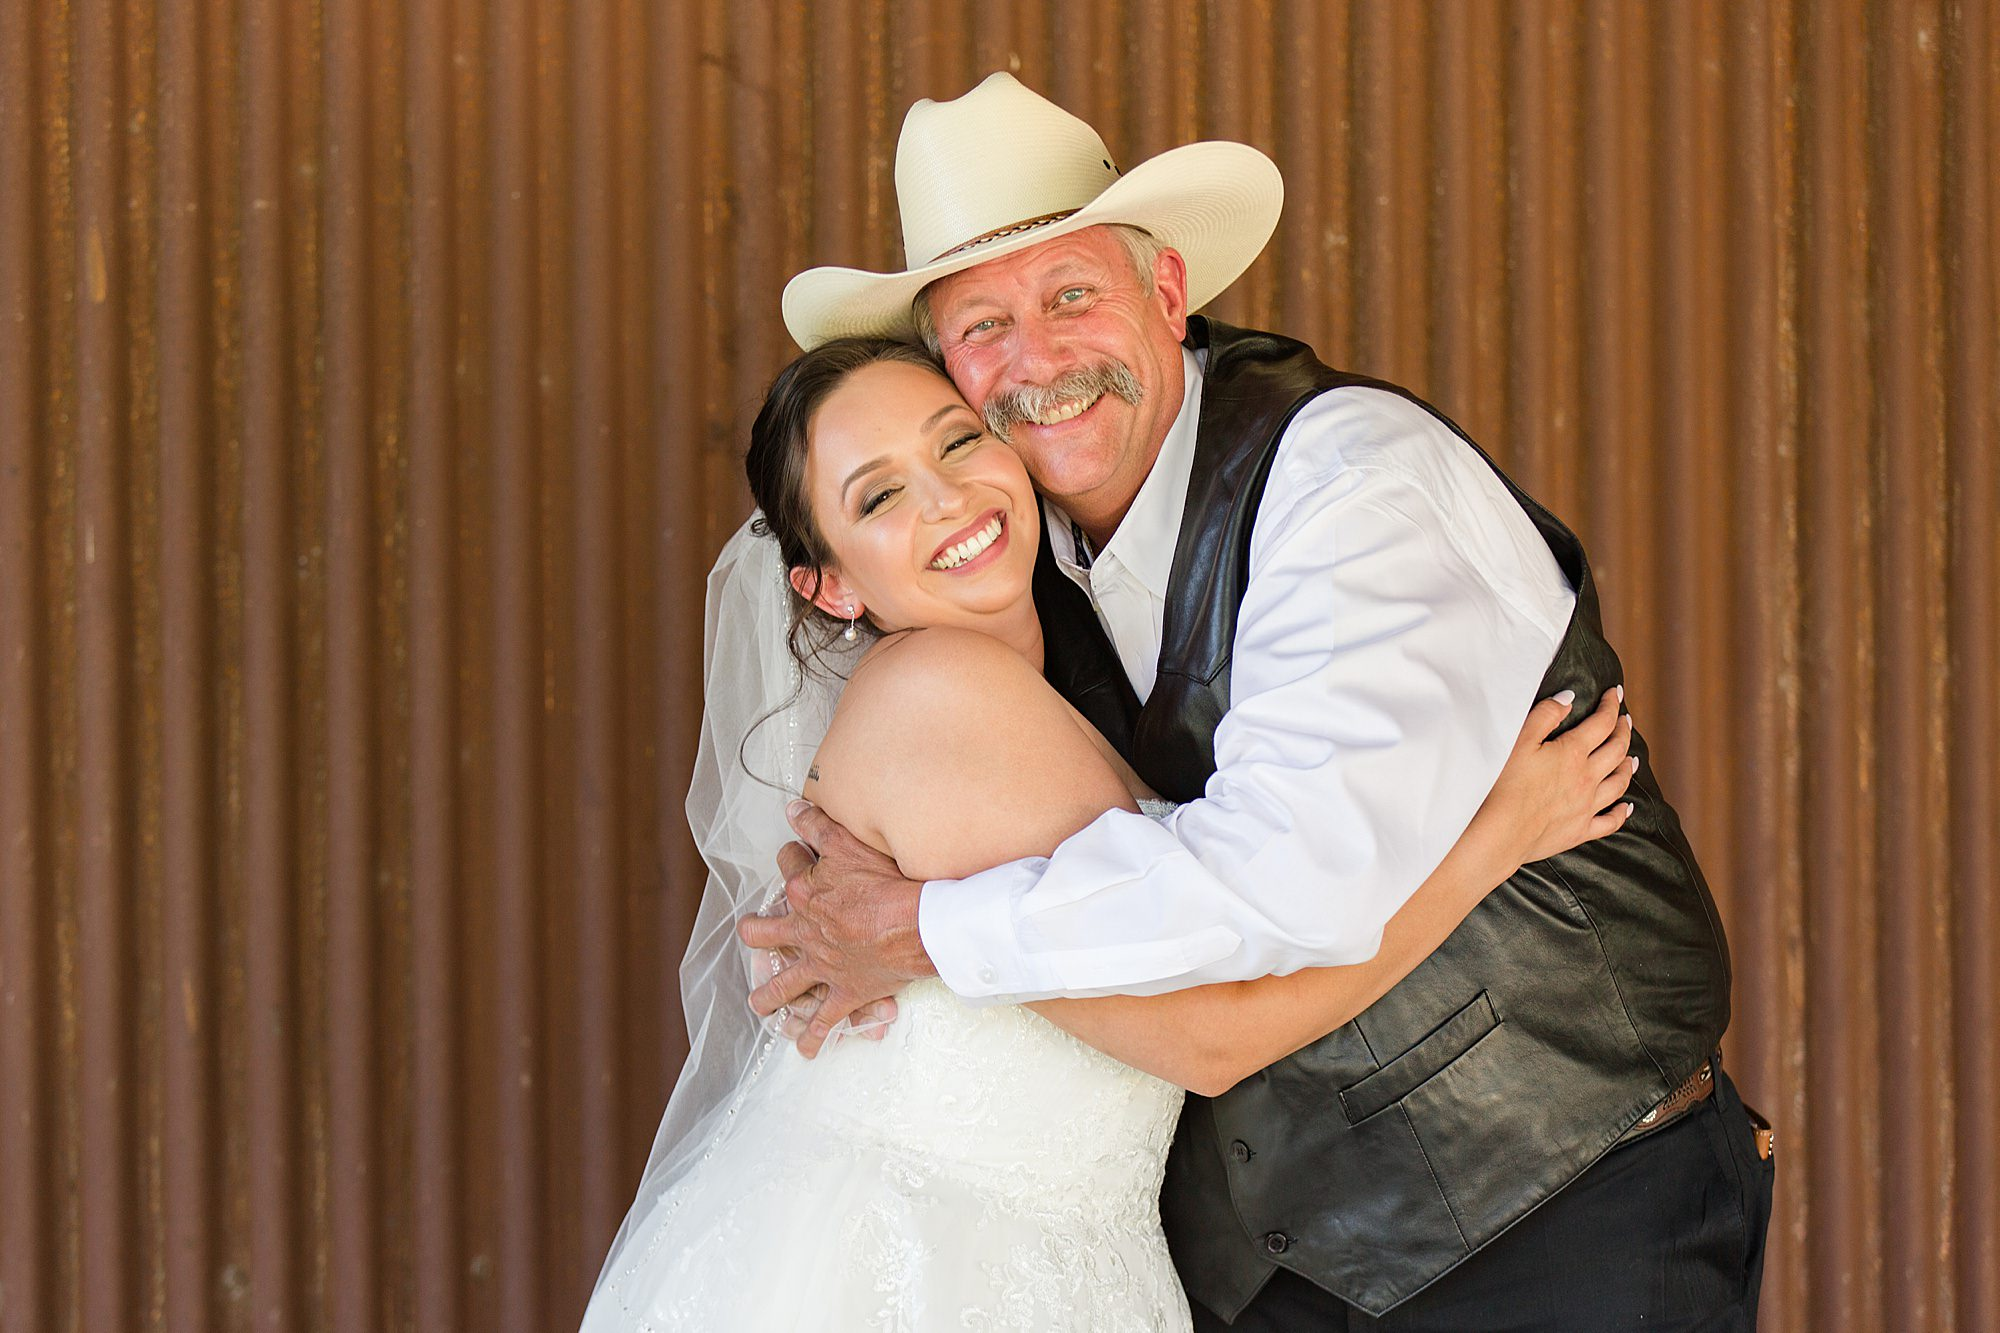 Wedding-Photographer-Bulverde-Texas-Western-Sky-Event-Venue-Carly-Barton-Photography_0009.jpg